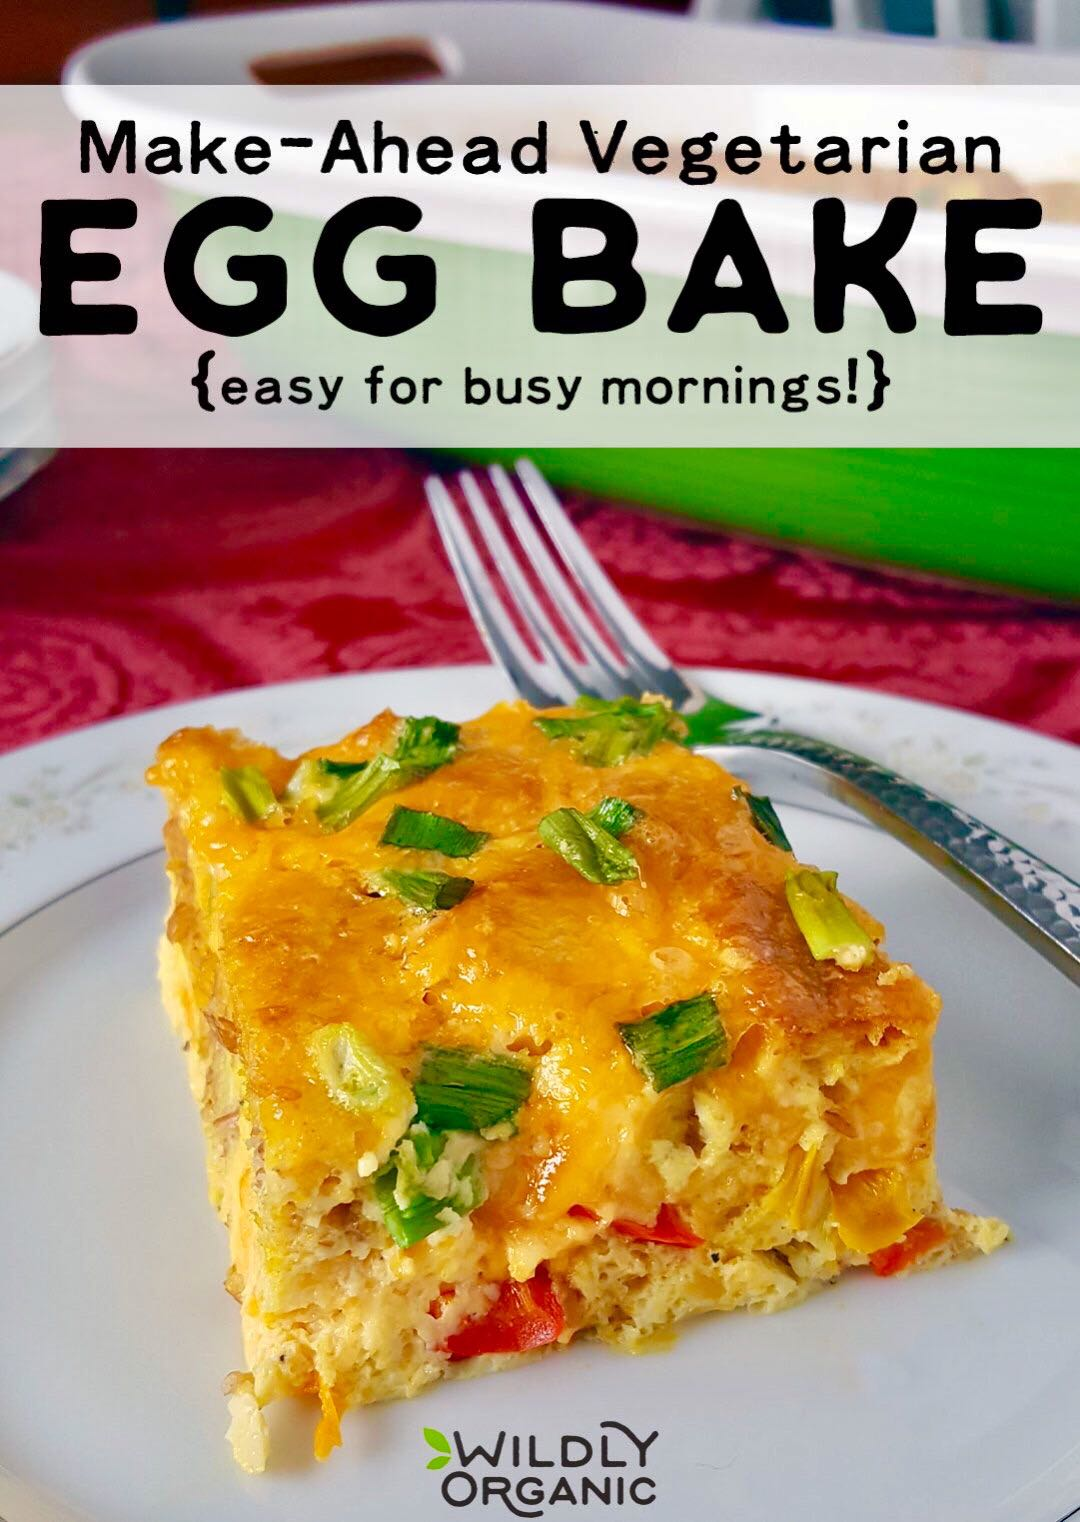 Photo of a slice of egg bake on a plate, with the casserole in the background.